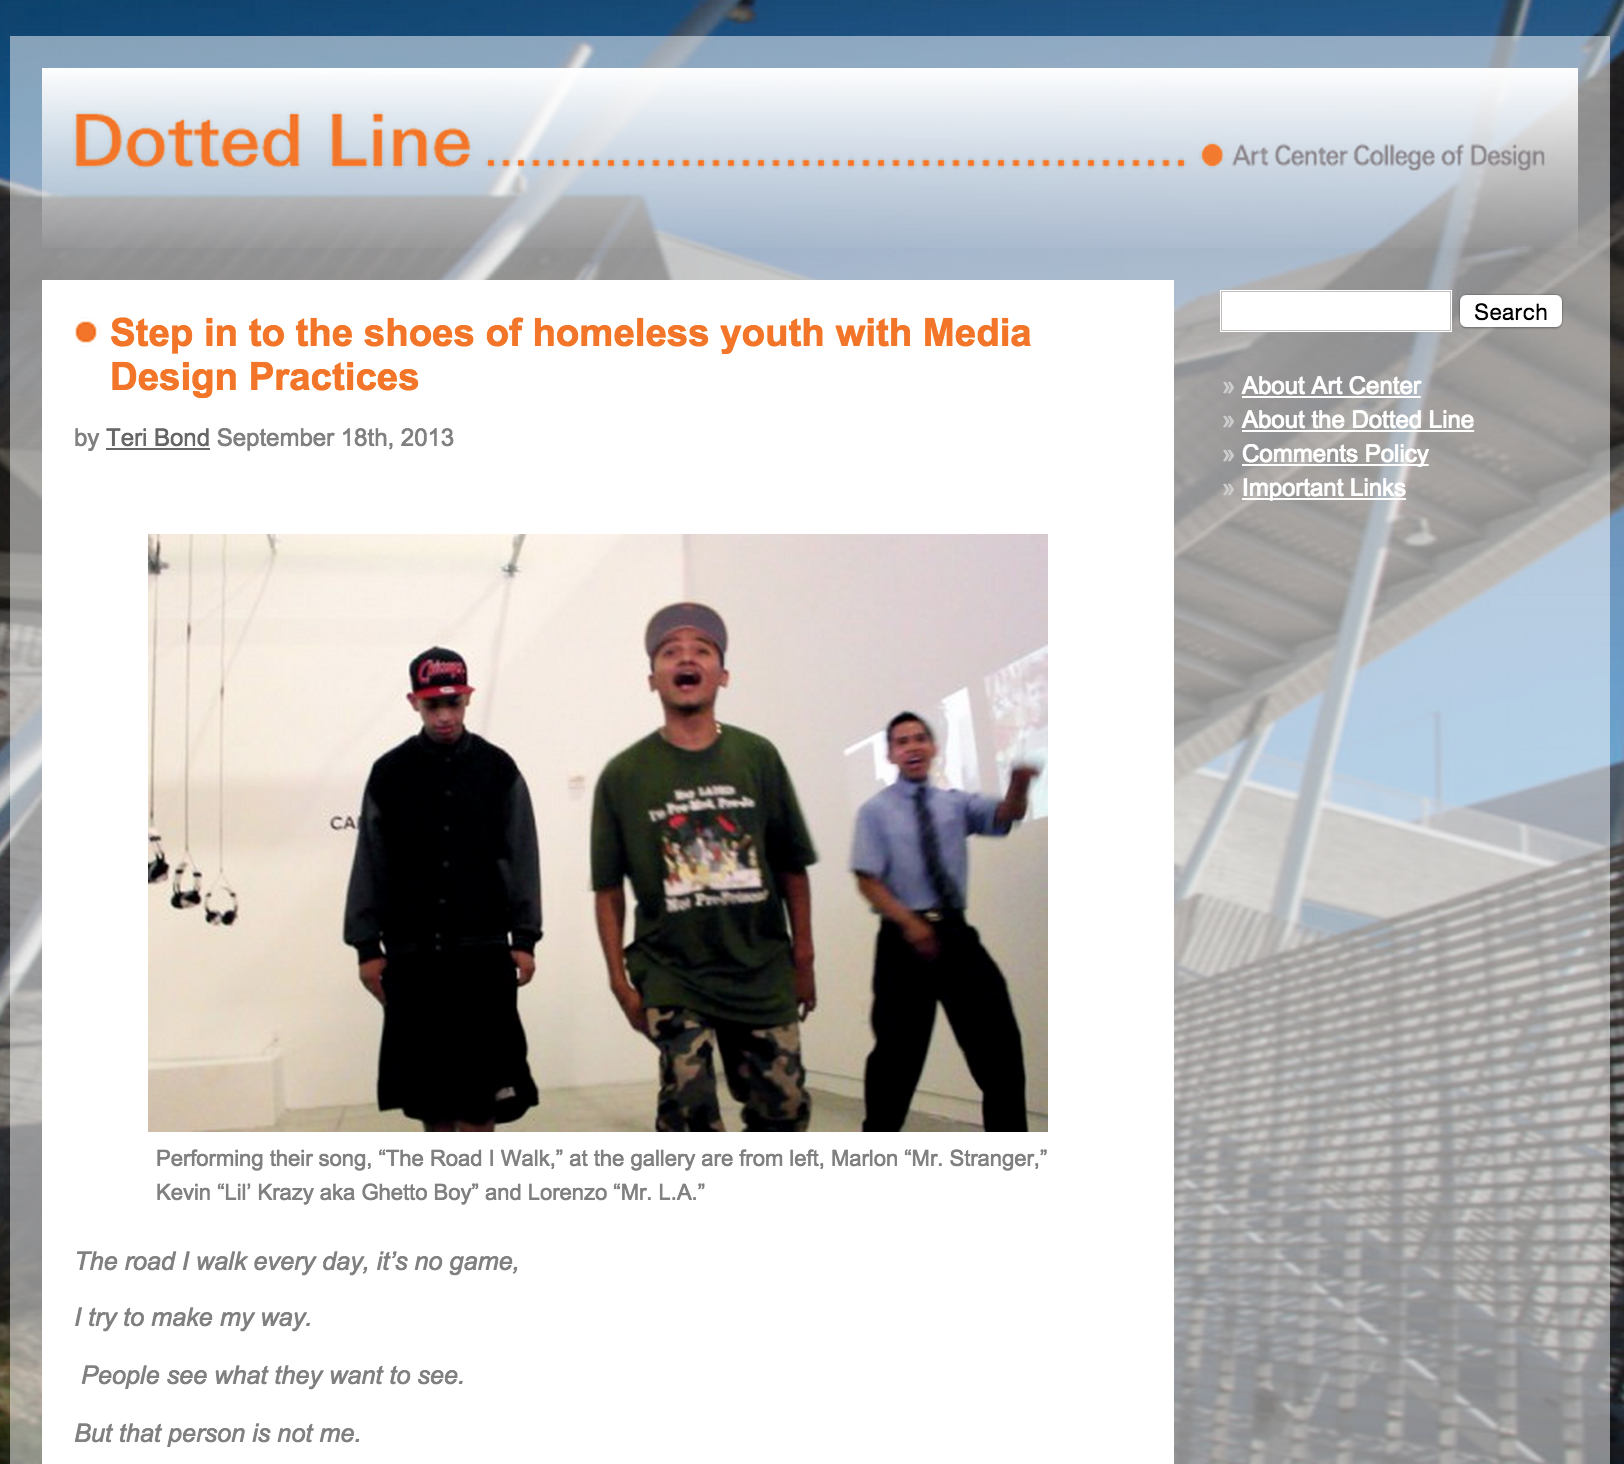 Featured in Art Center's Dotted Line  Step in the shoes of homeless youth with Media Design Practices